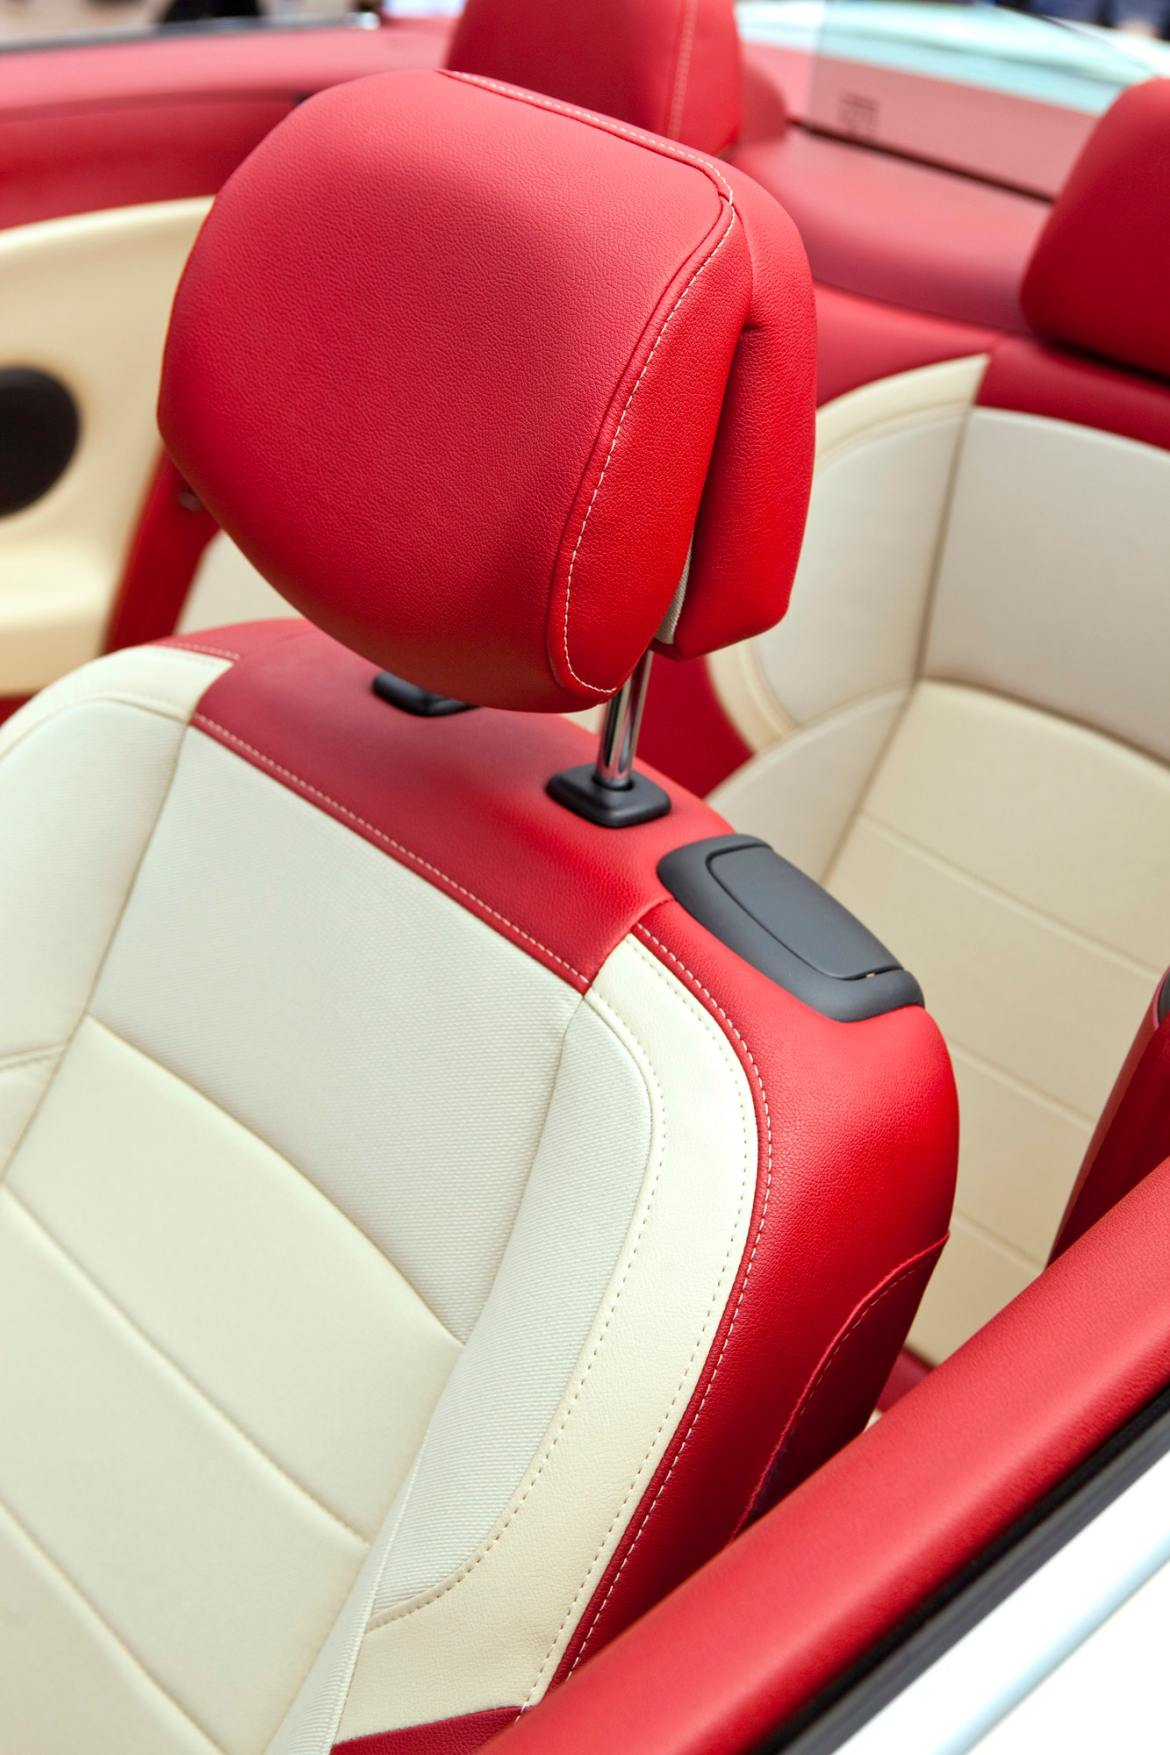 Leather seats in a car.